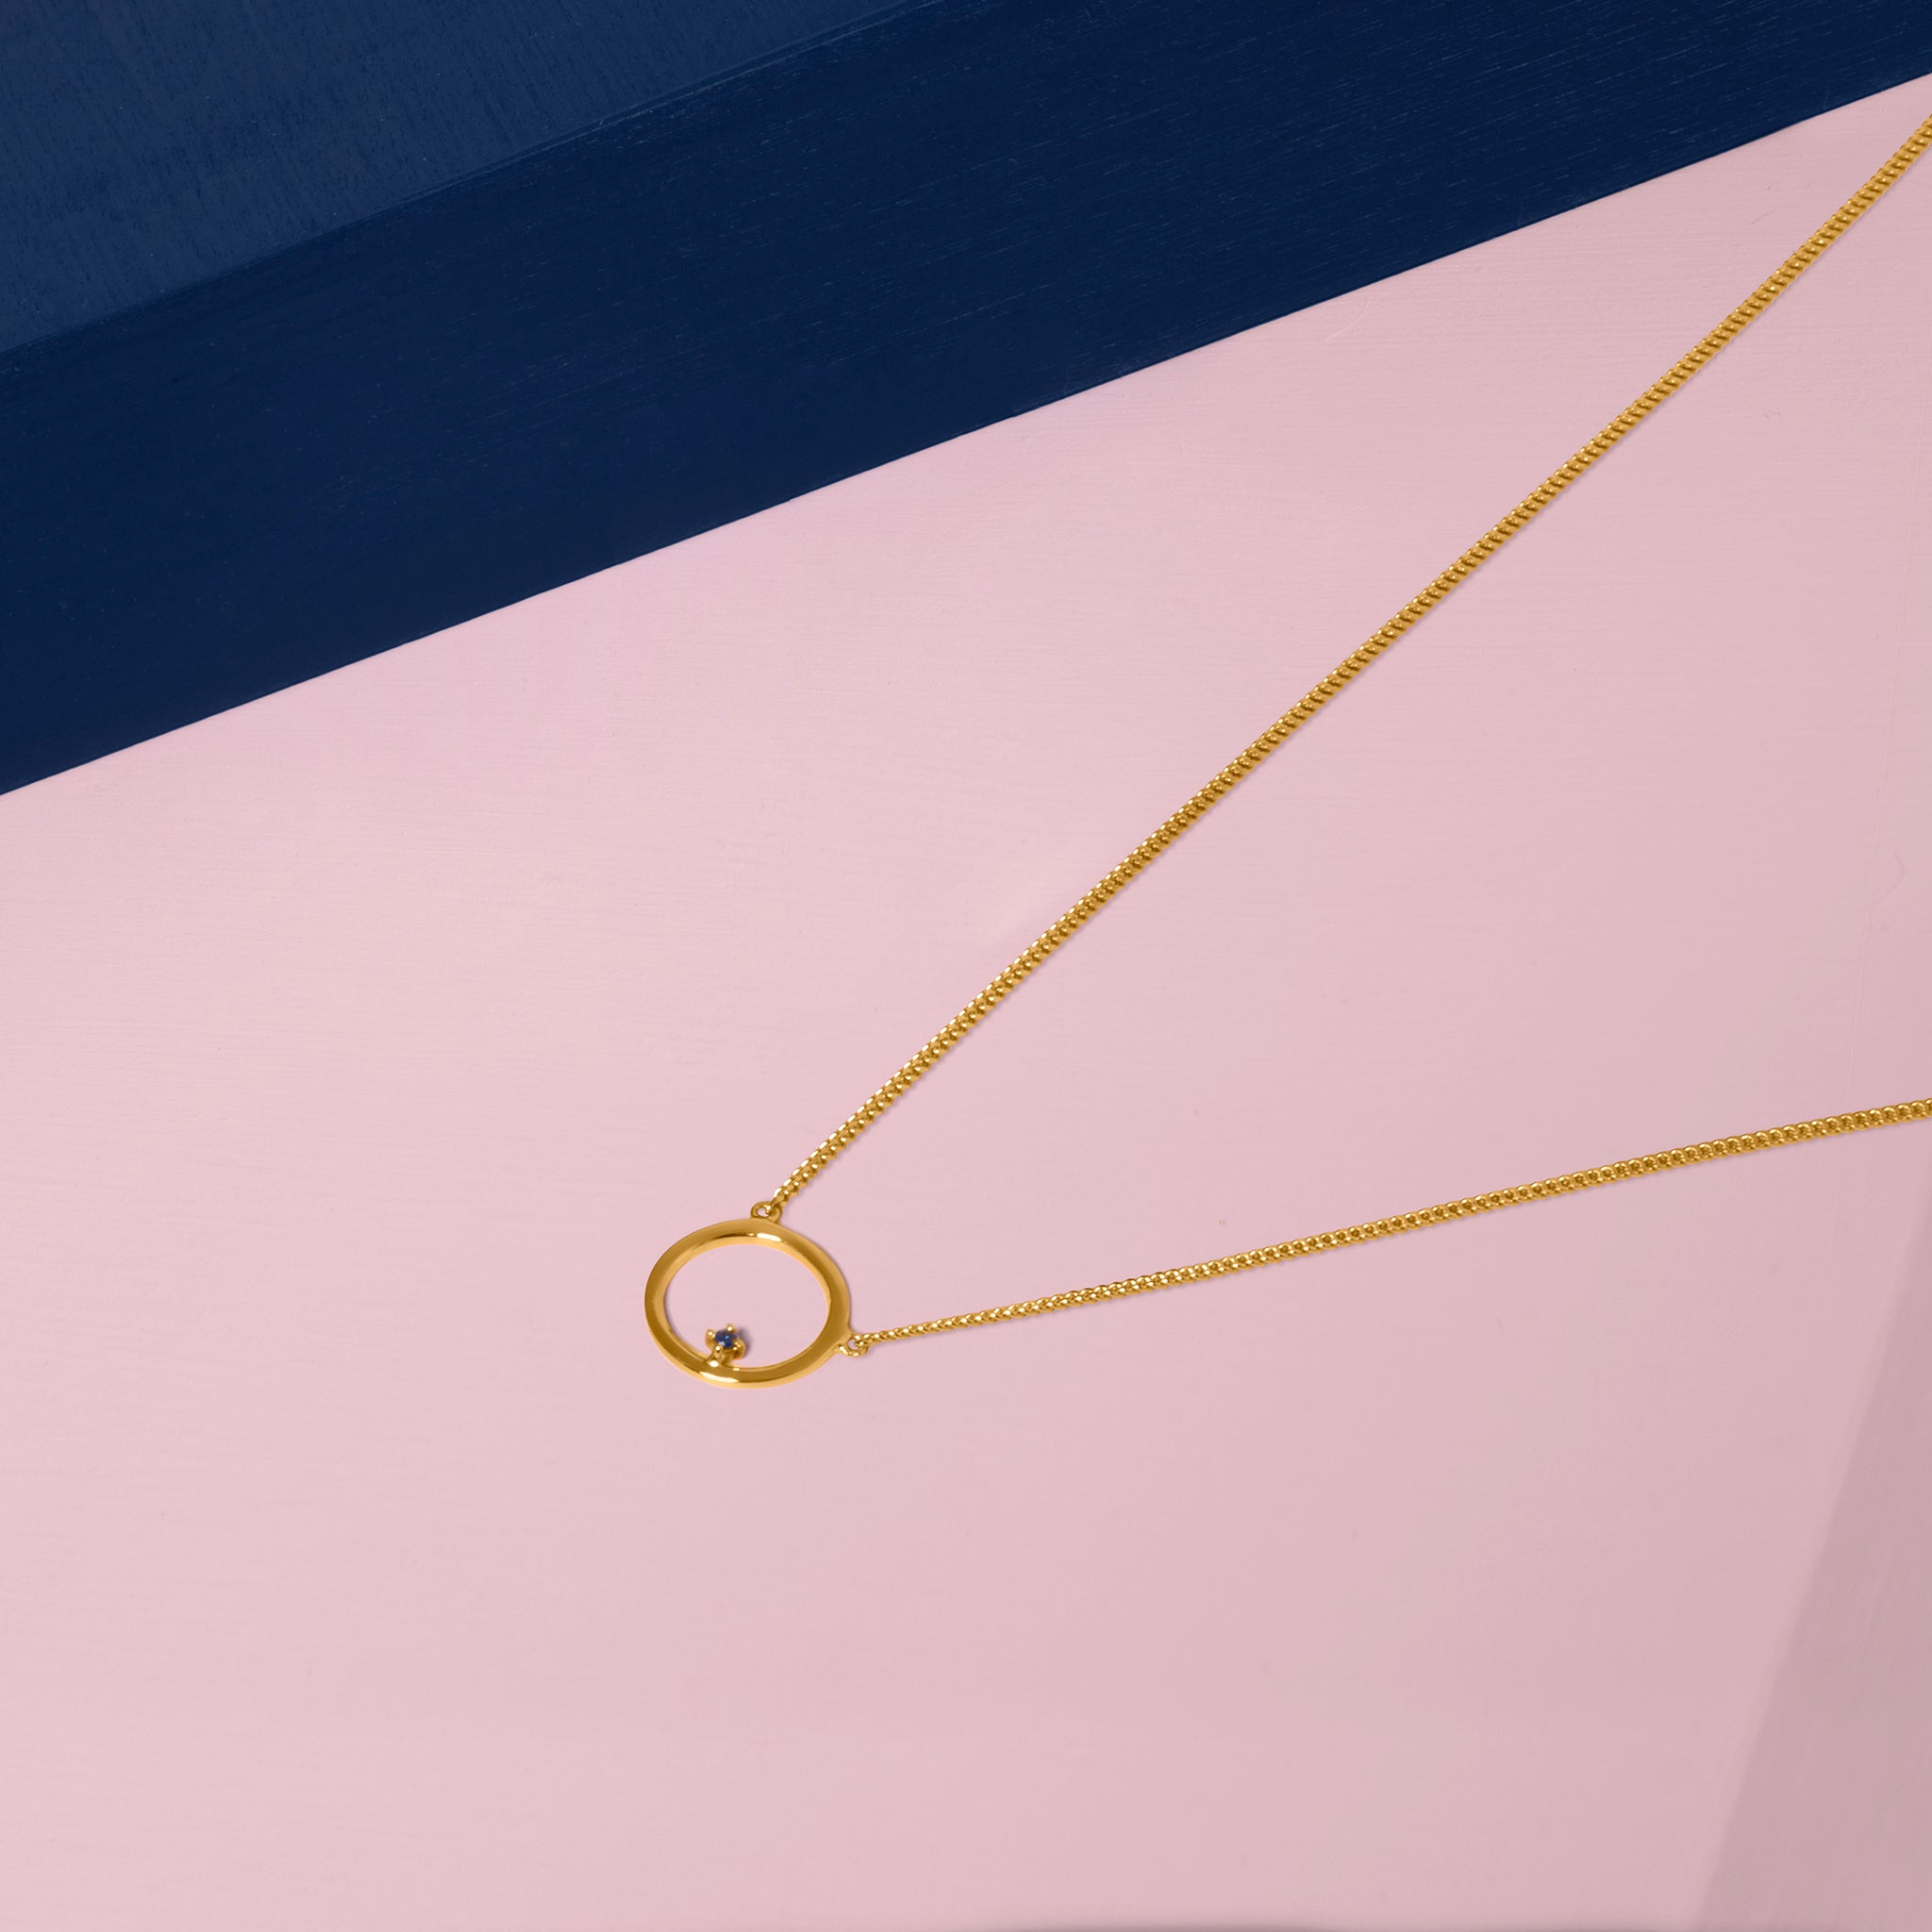 Free To Roam Necklace Gold Styled On Pink and Blue